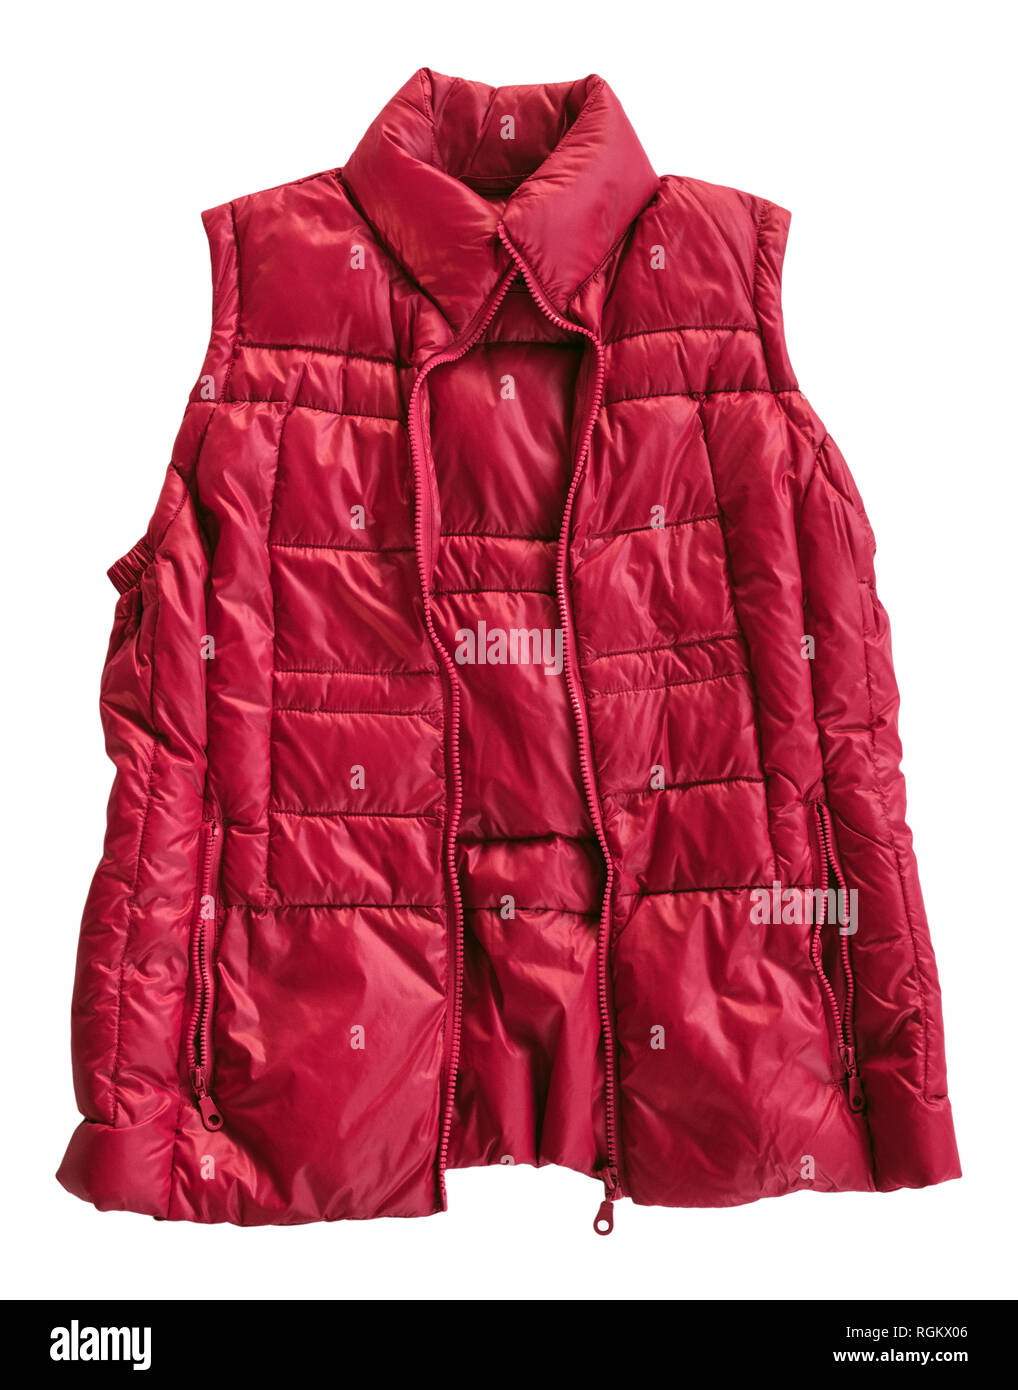 Down insulated bright red gilet vest waistcoat sleeveless jacket bodywarmer cutout and isolated on a white background. England UK Britain - Stock Image